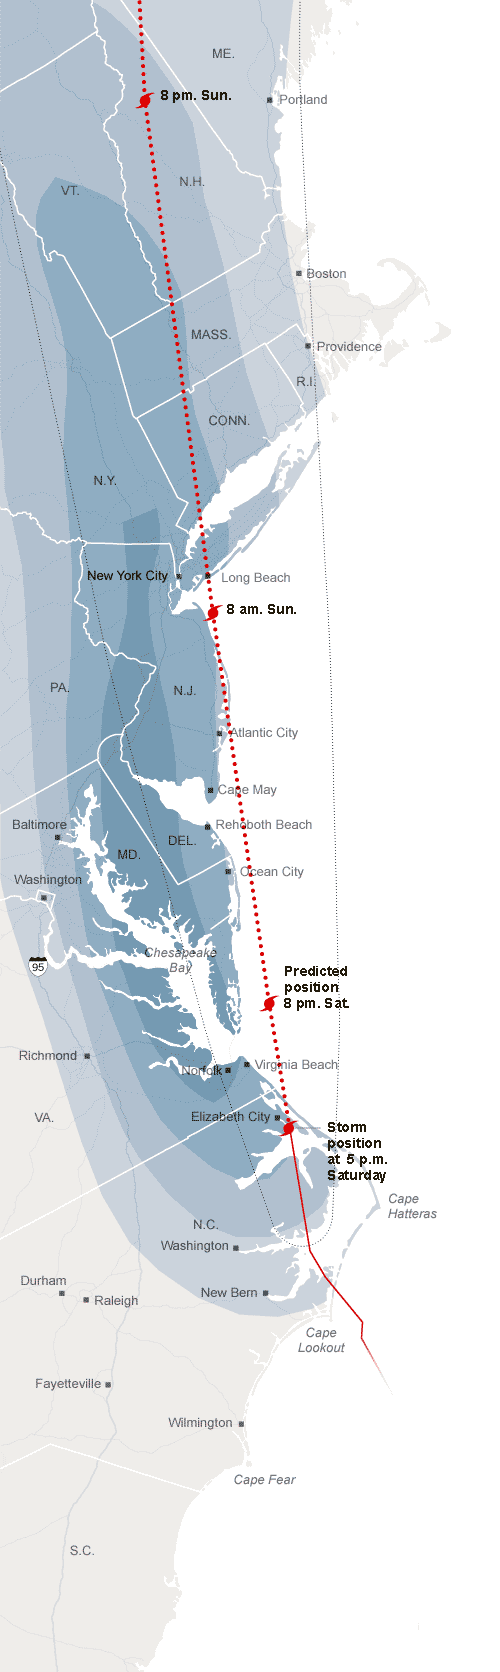 https://i2.wp.com/graphics8.nytimes.com/packages/images/newsgraphics/2011/0827-irene-damage-reports/storm-map.png